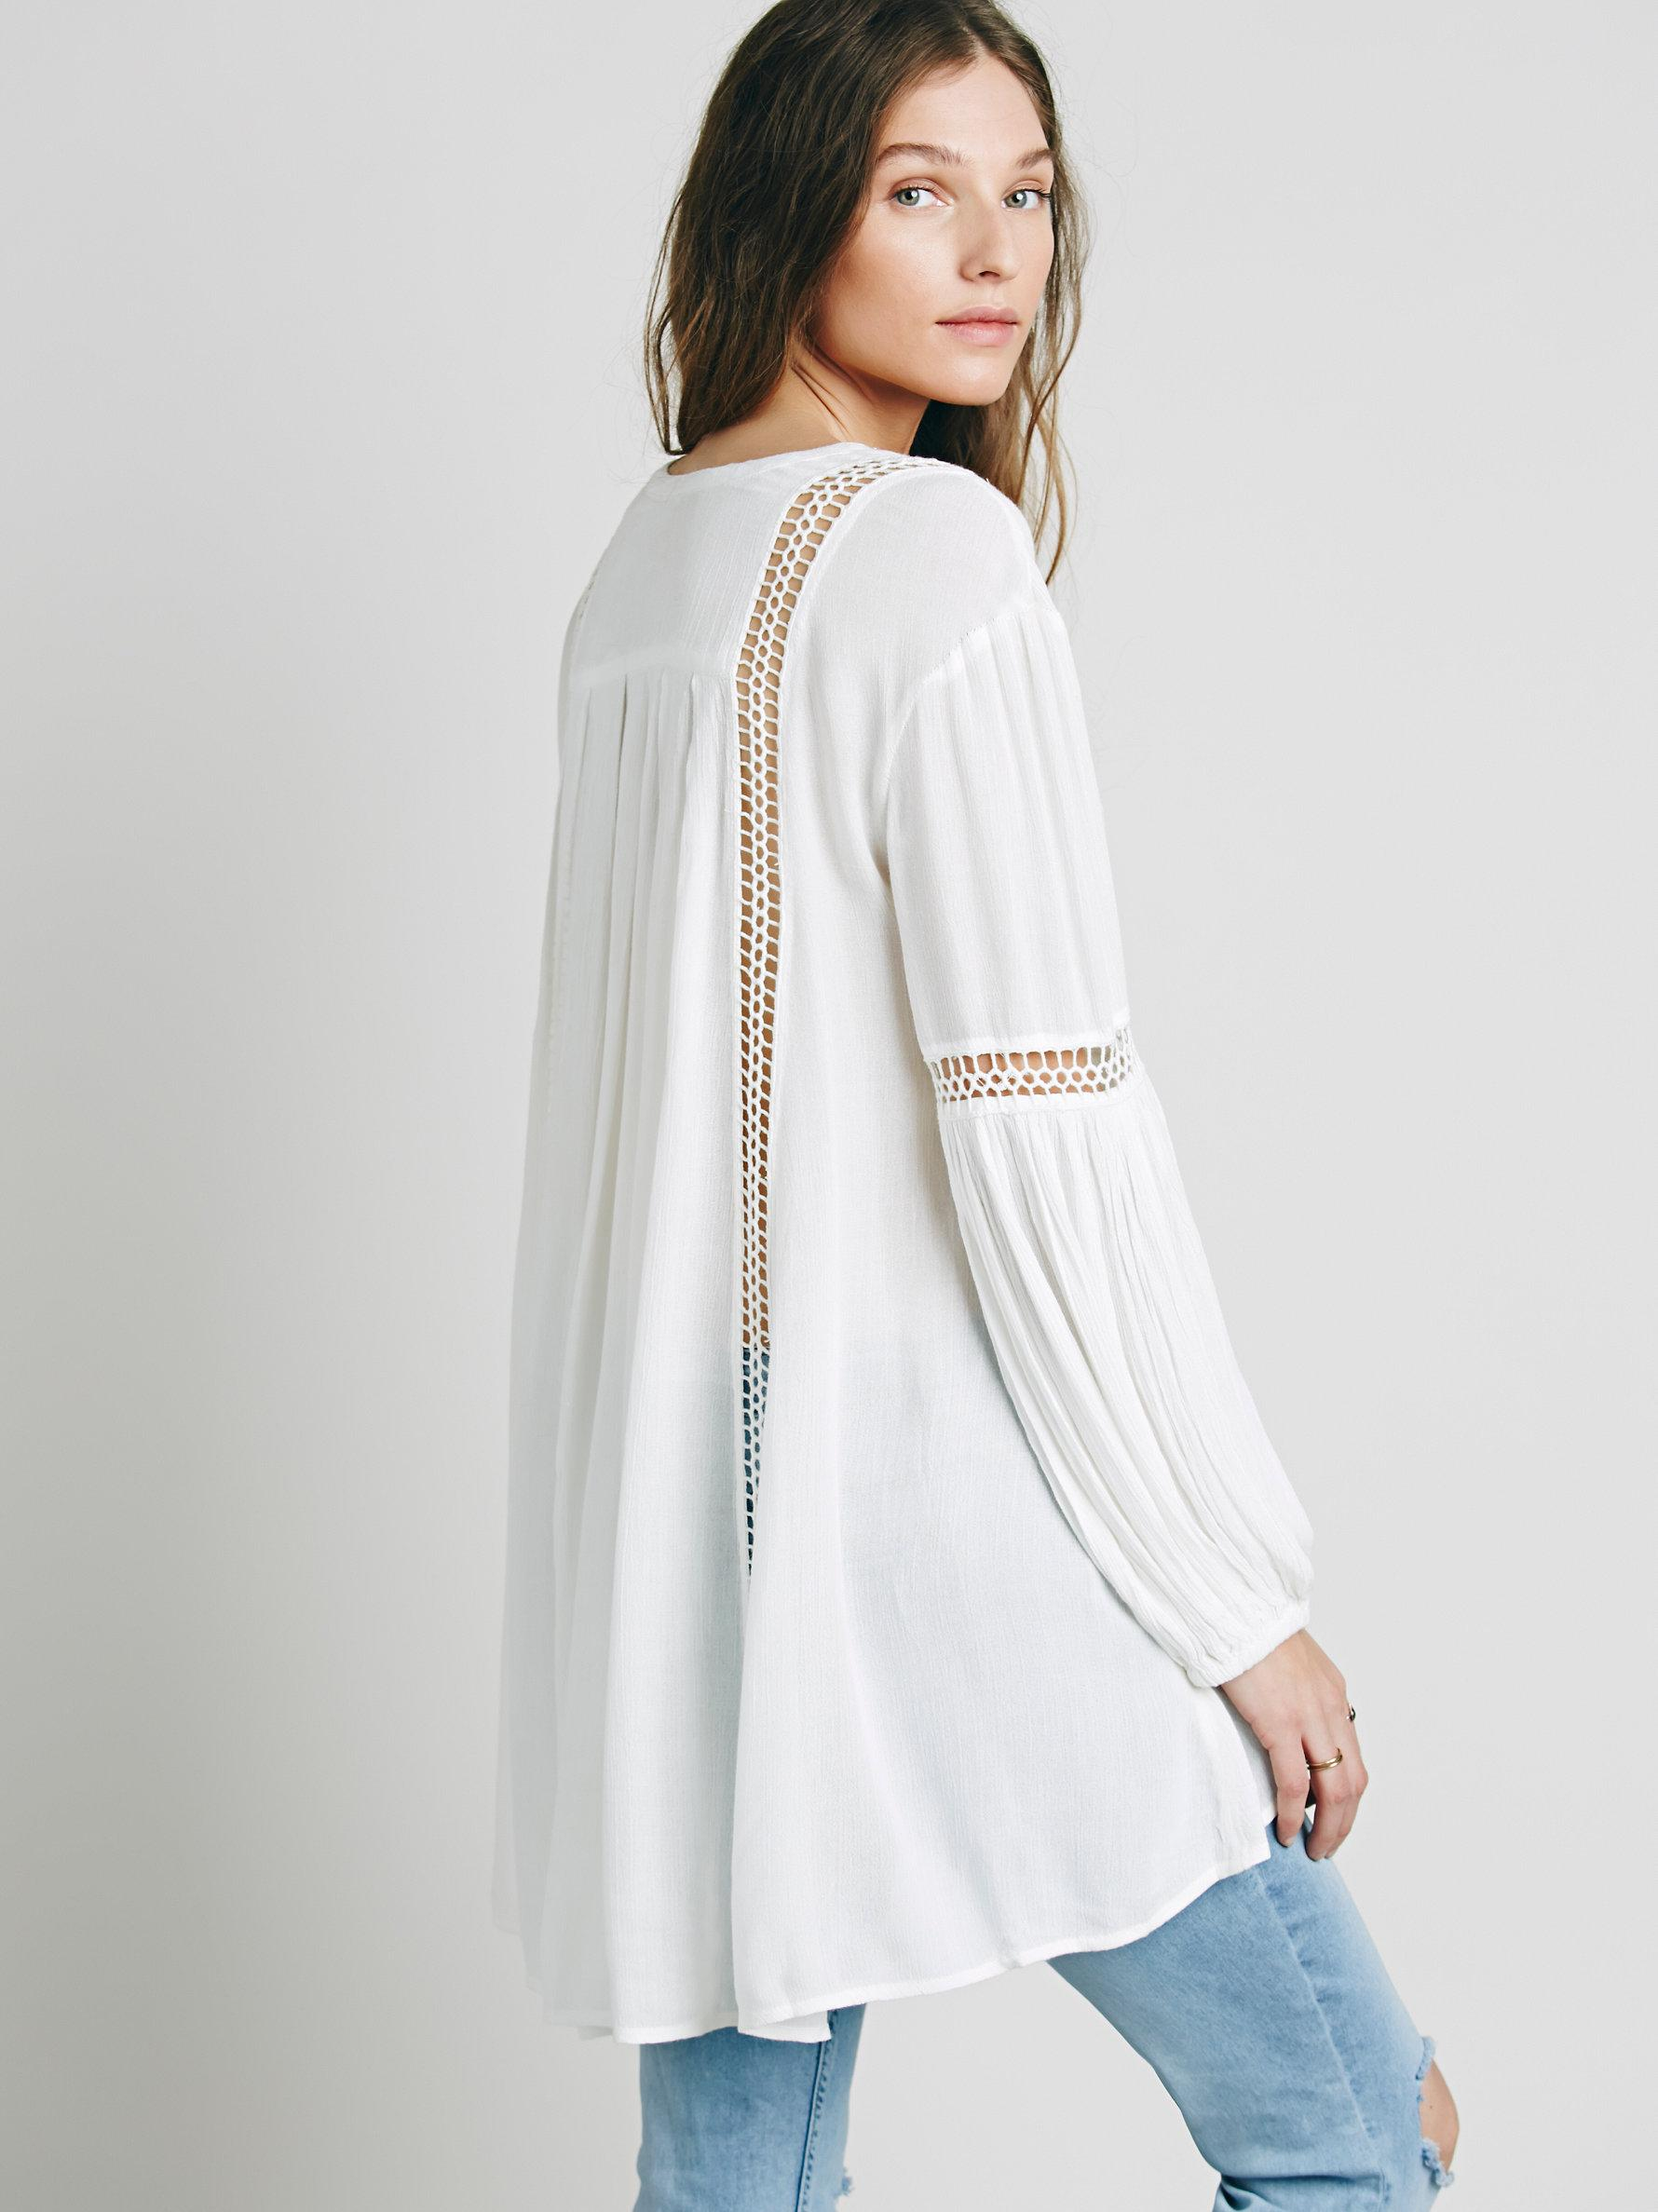 4480eae5691f Free People Babydoll Lace Inset Swing Tunic in White - Lyst